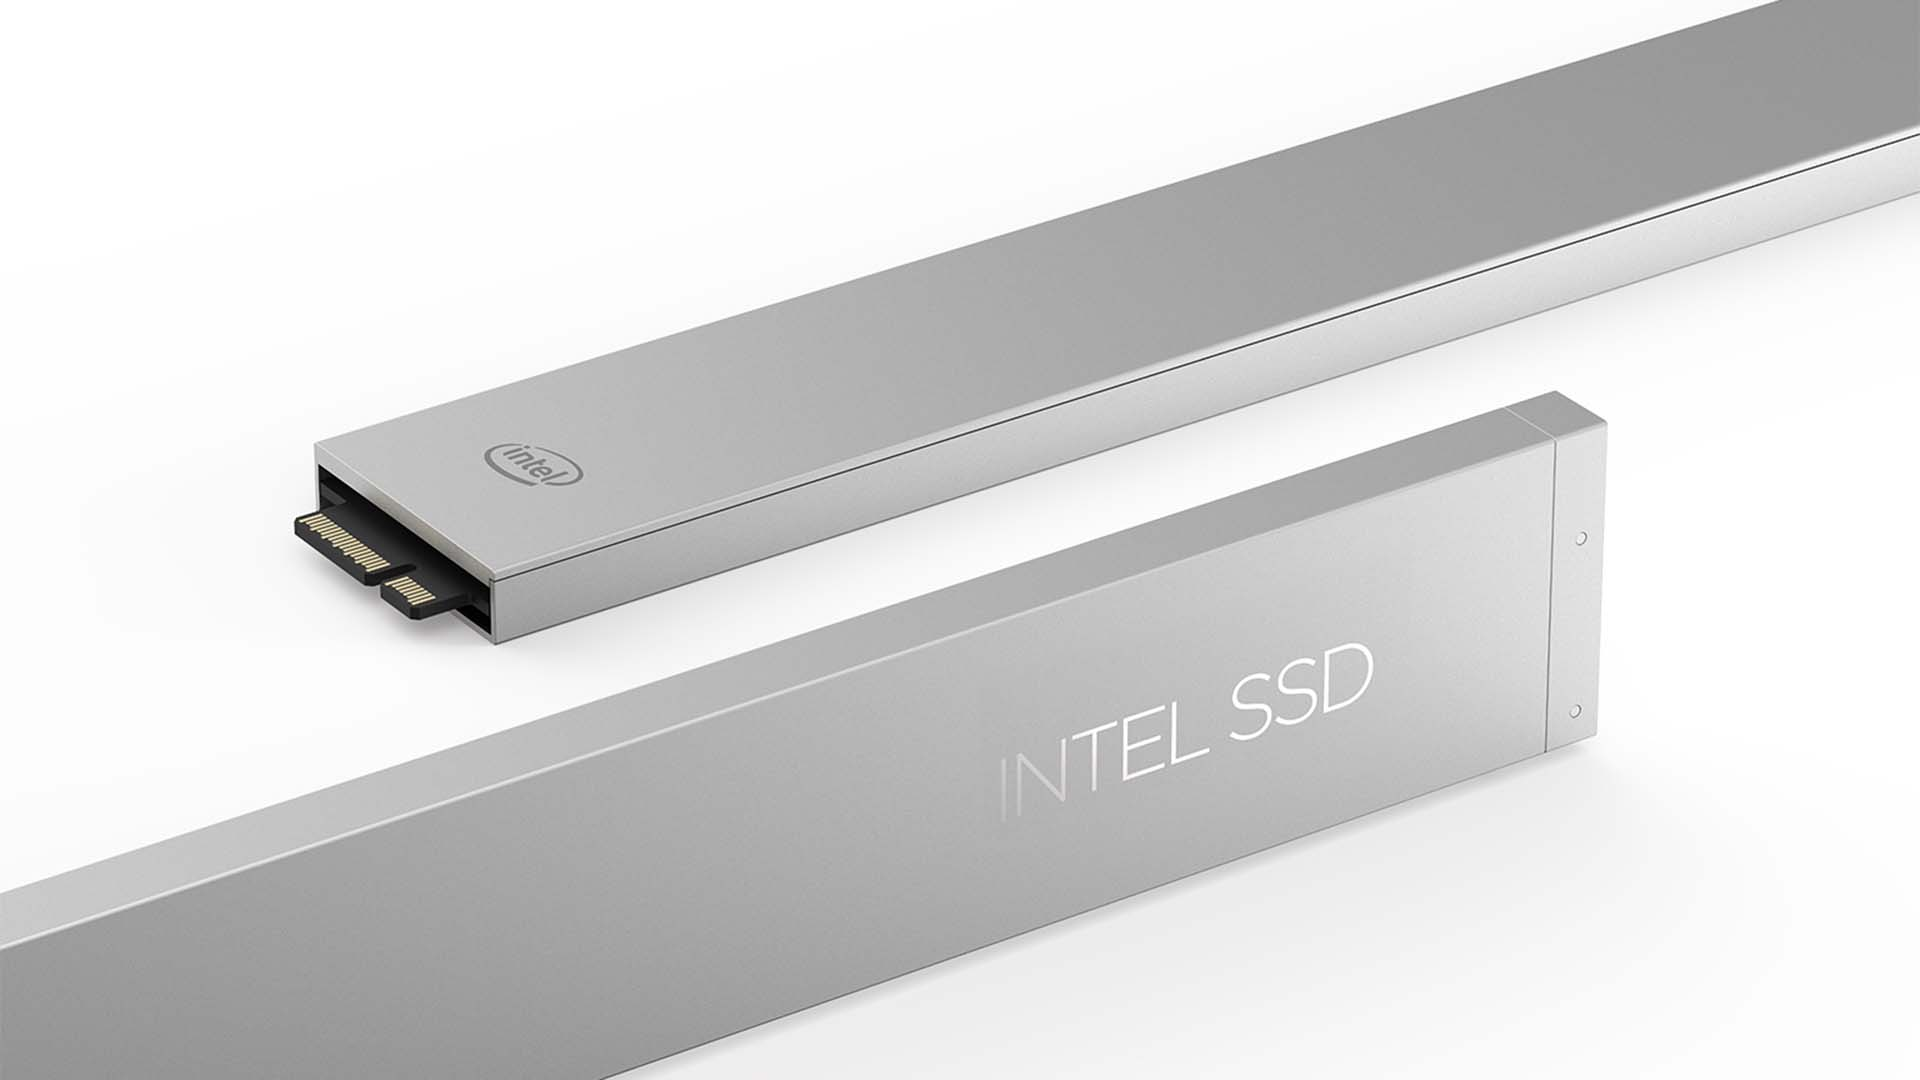 The Intel SSD DC P4500 Series comes in the ruler form factor, which is built for data center efficiency. The ruler form factor delivers unprecedented storage density, system design flexibility, scalable performance and easy maintenance. (Credit: Intel Corporation)